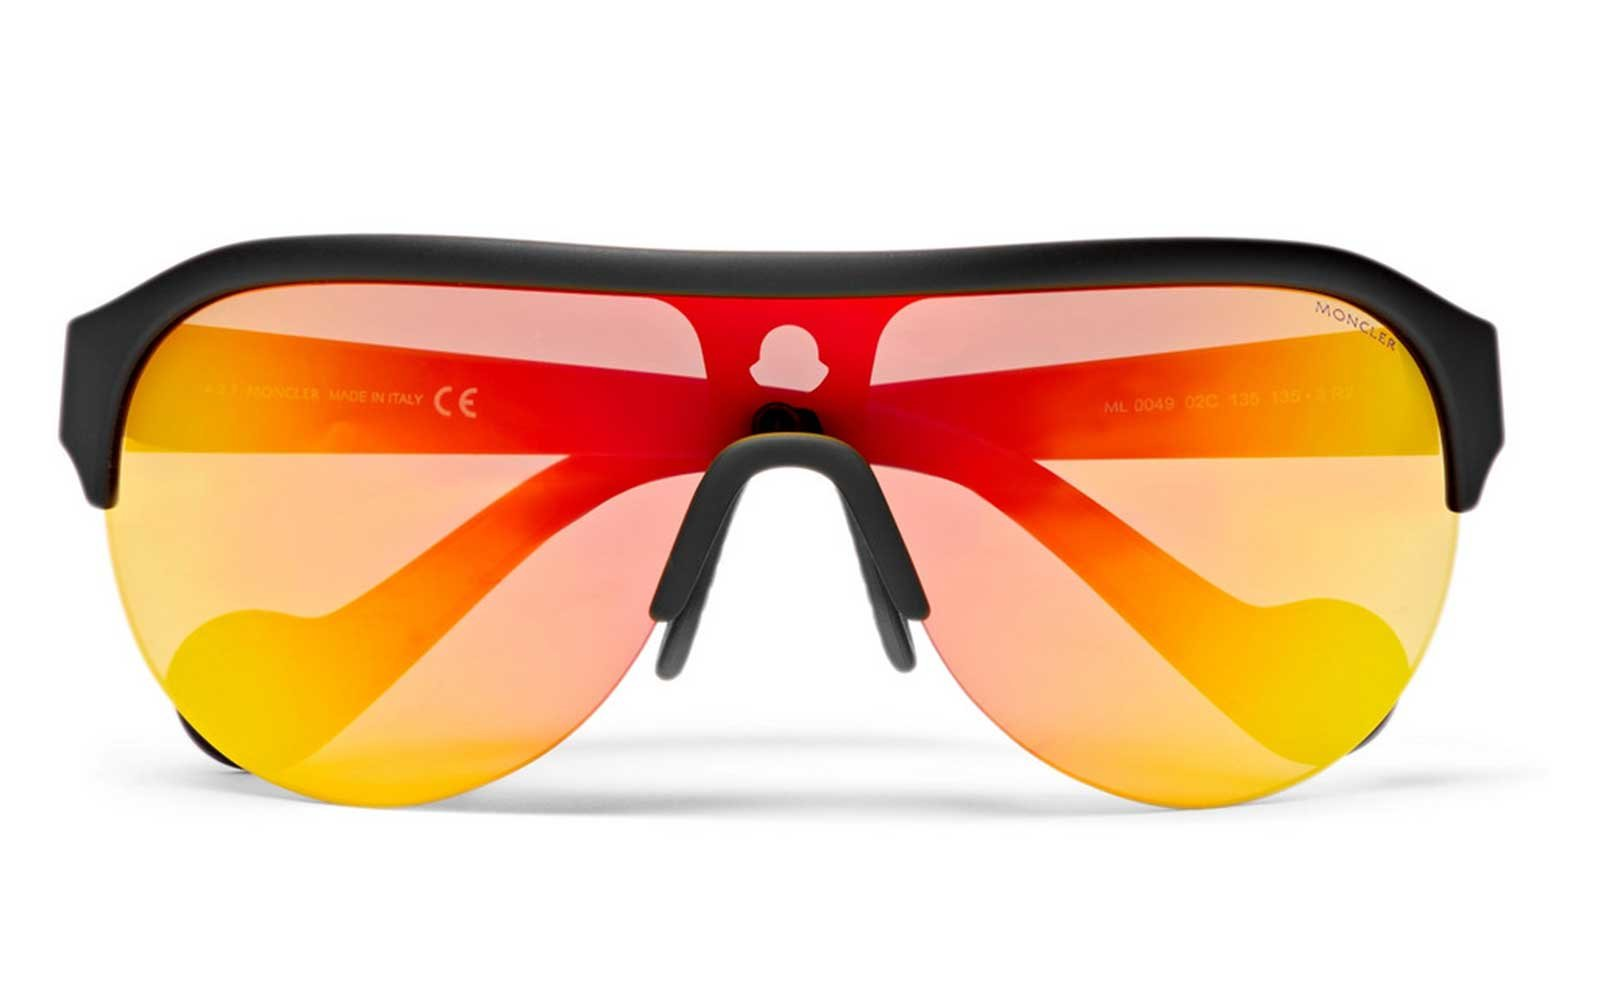 Red and yellow ski glasses by Moncler